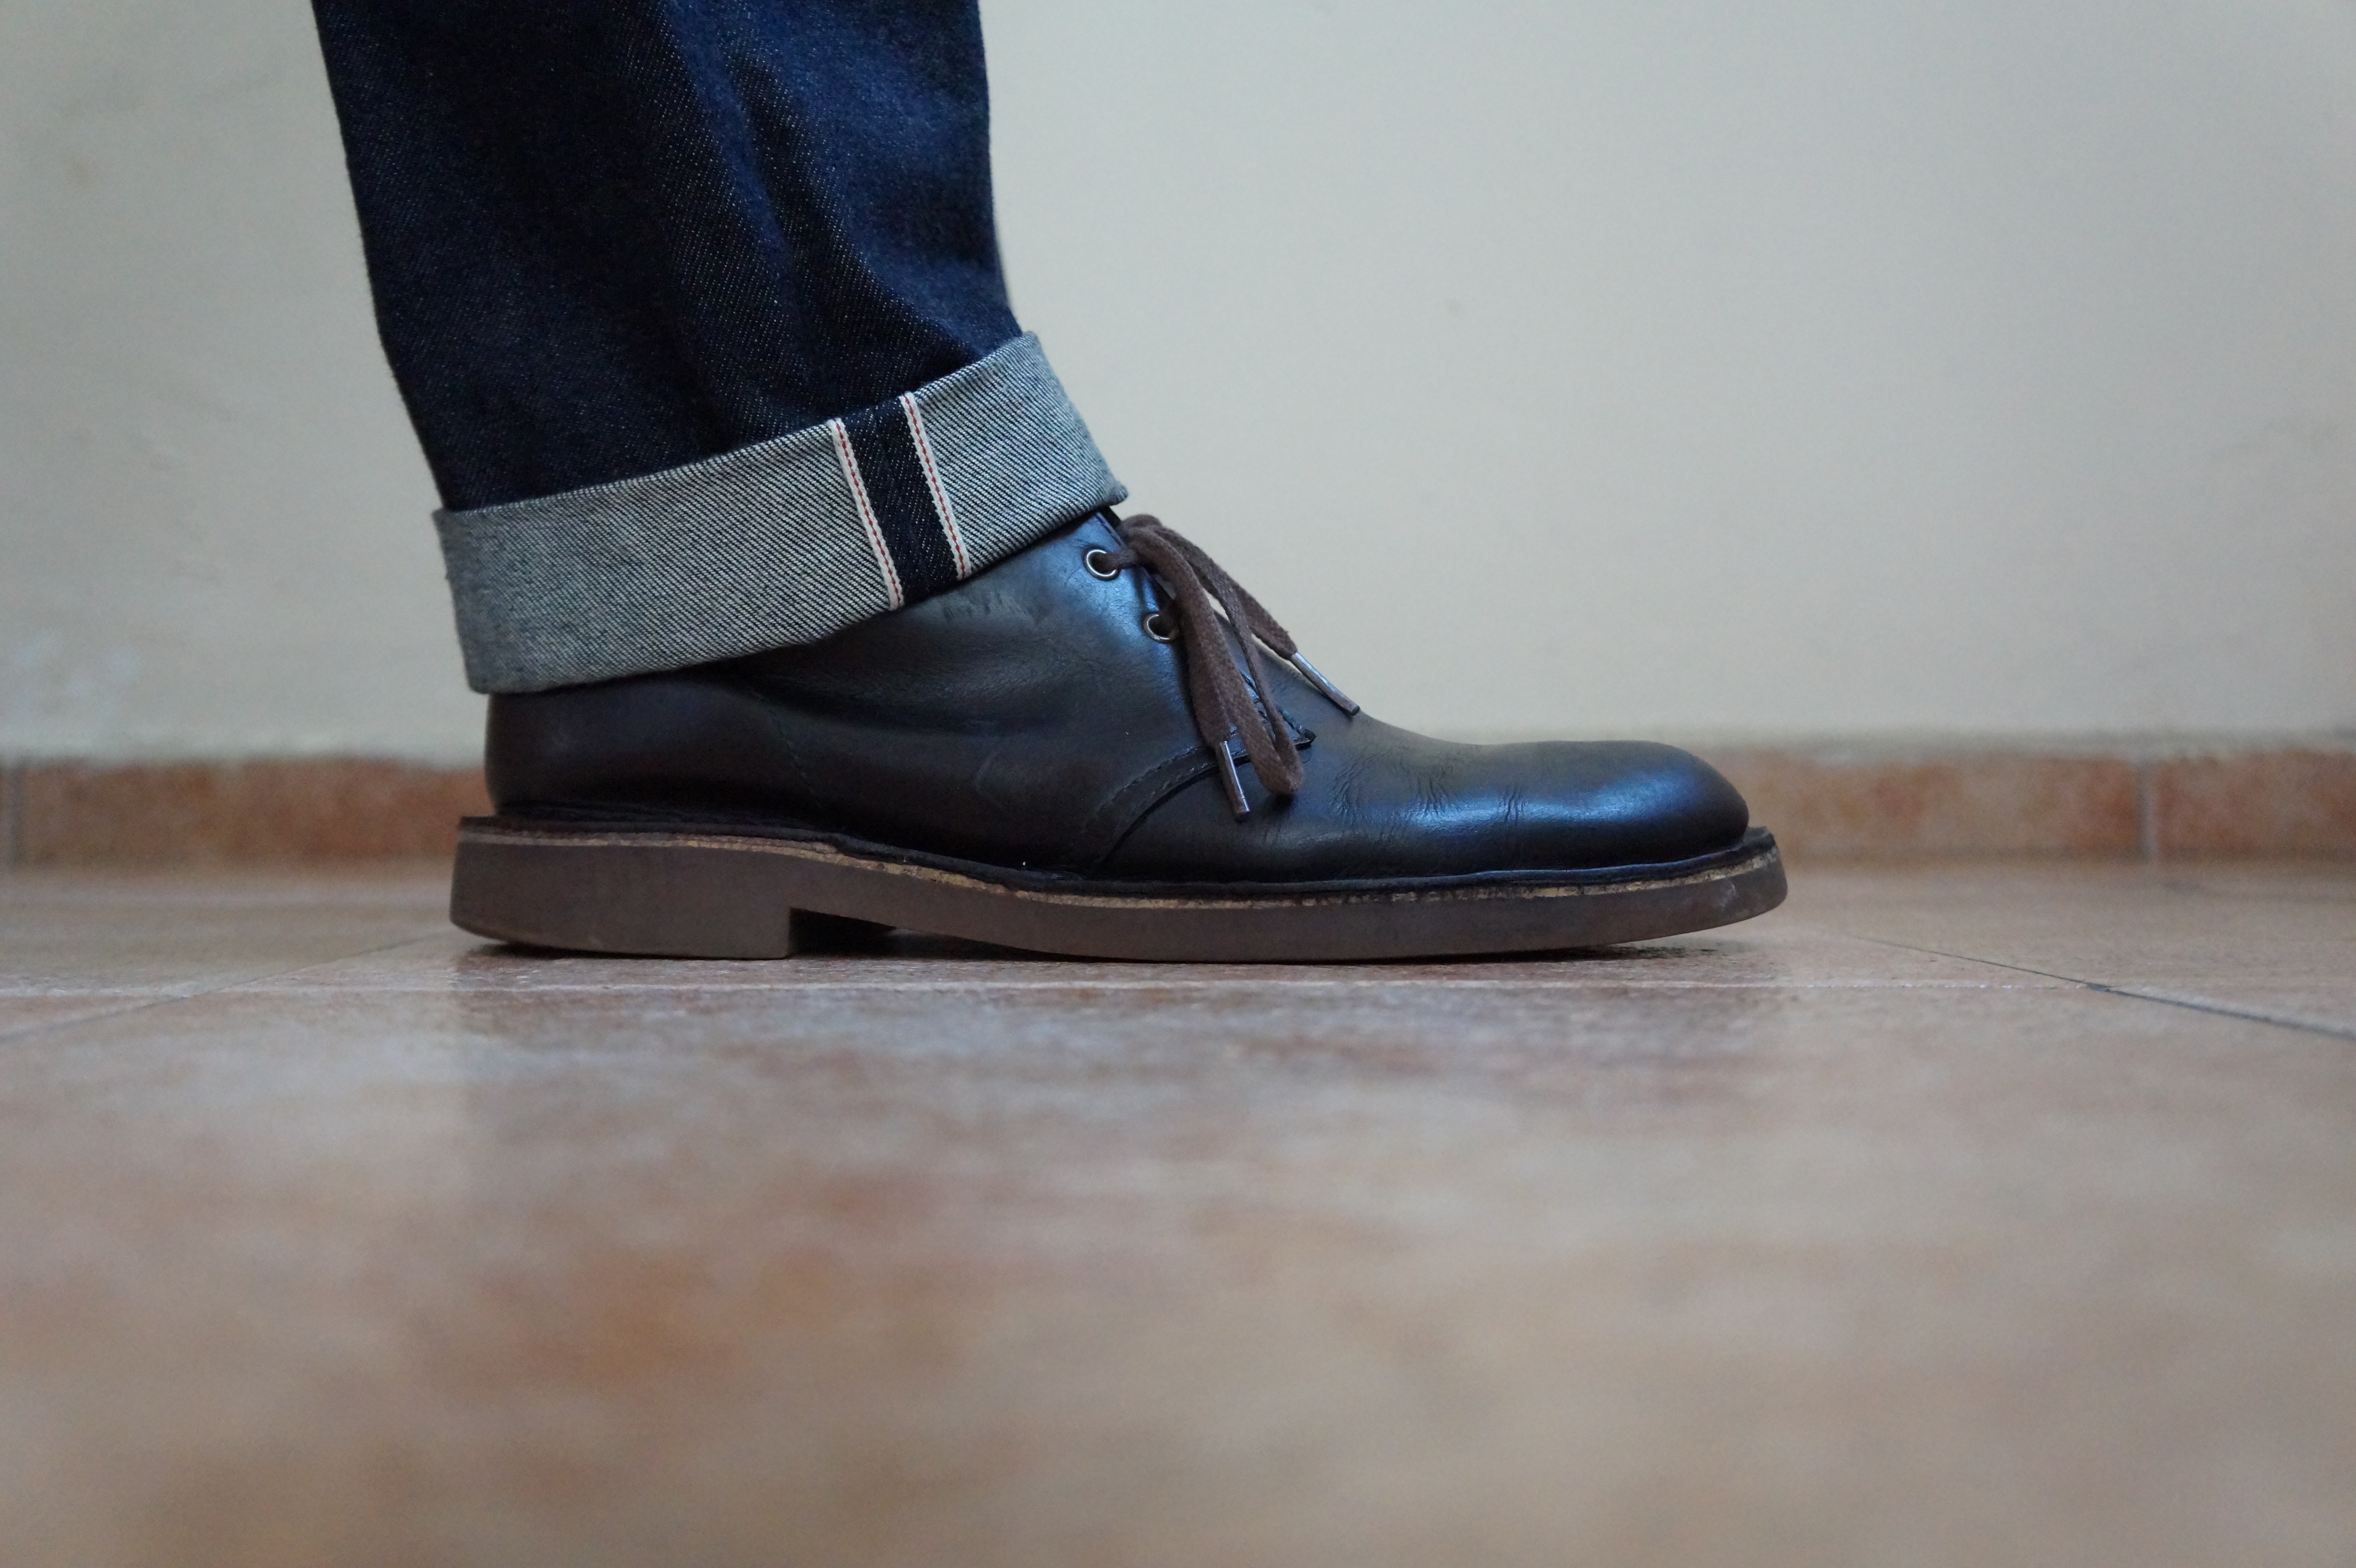 2627e358059 Guest Post: The Product Review, Clarks Bushacre 2 Boots   The Style ...